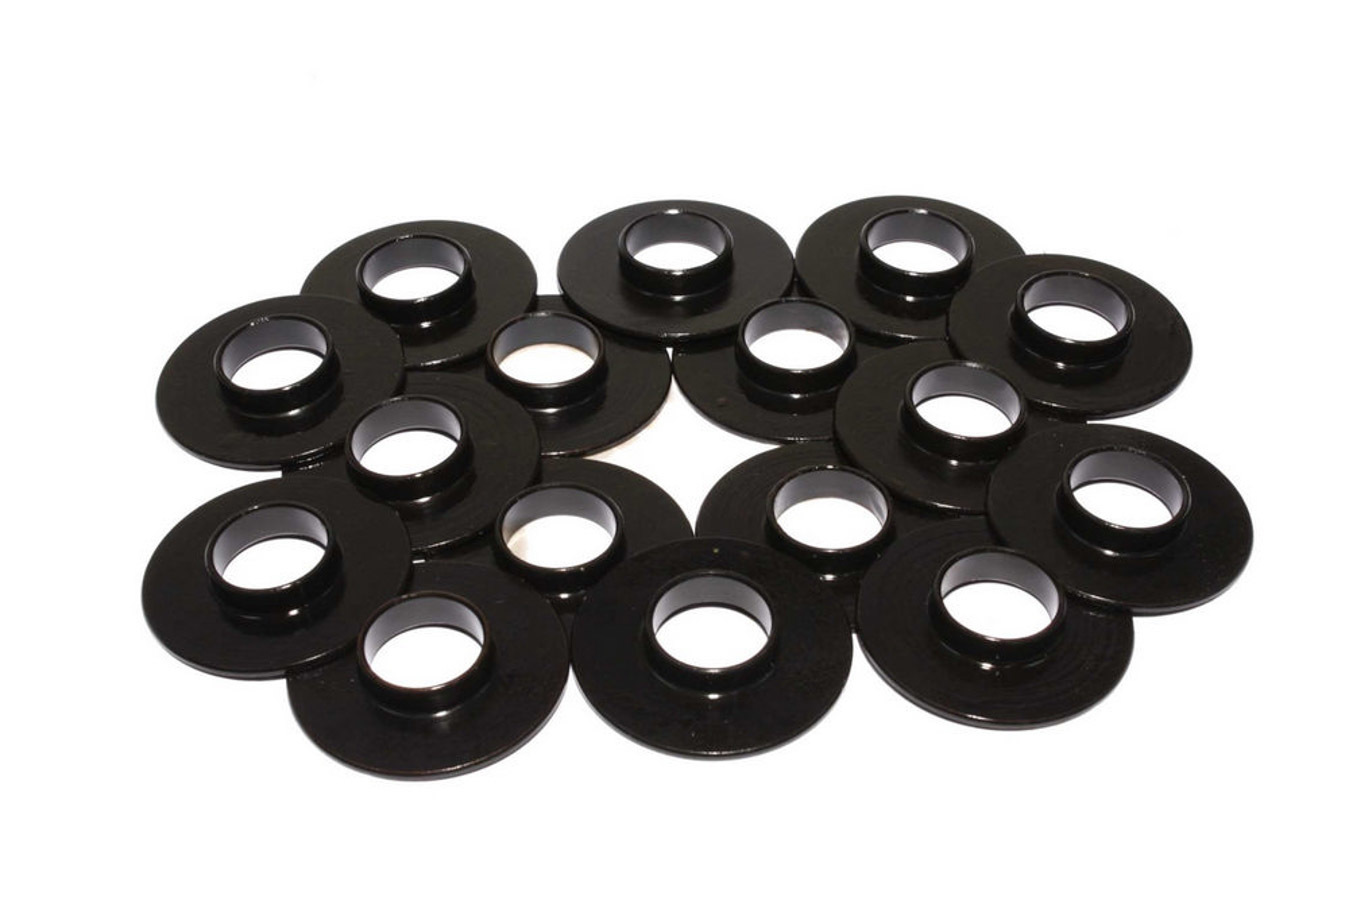 Comp Cams 4777-16 Valve Spring Locator, Inside, 0.060 in Thick, 1.540 in OD, 0.640 in ID, 0.790 in Spring ID, Steel, Set of 16